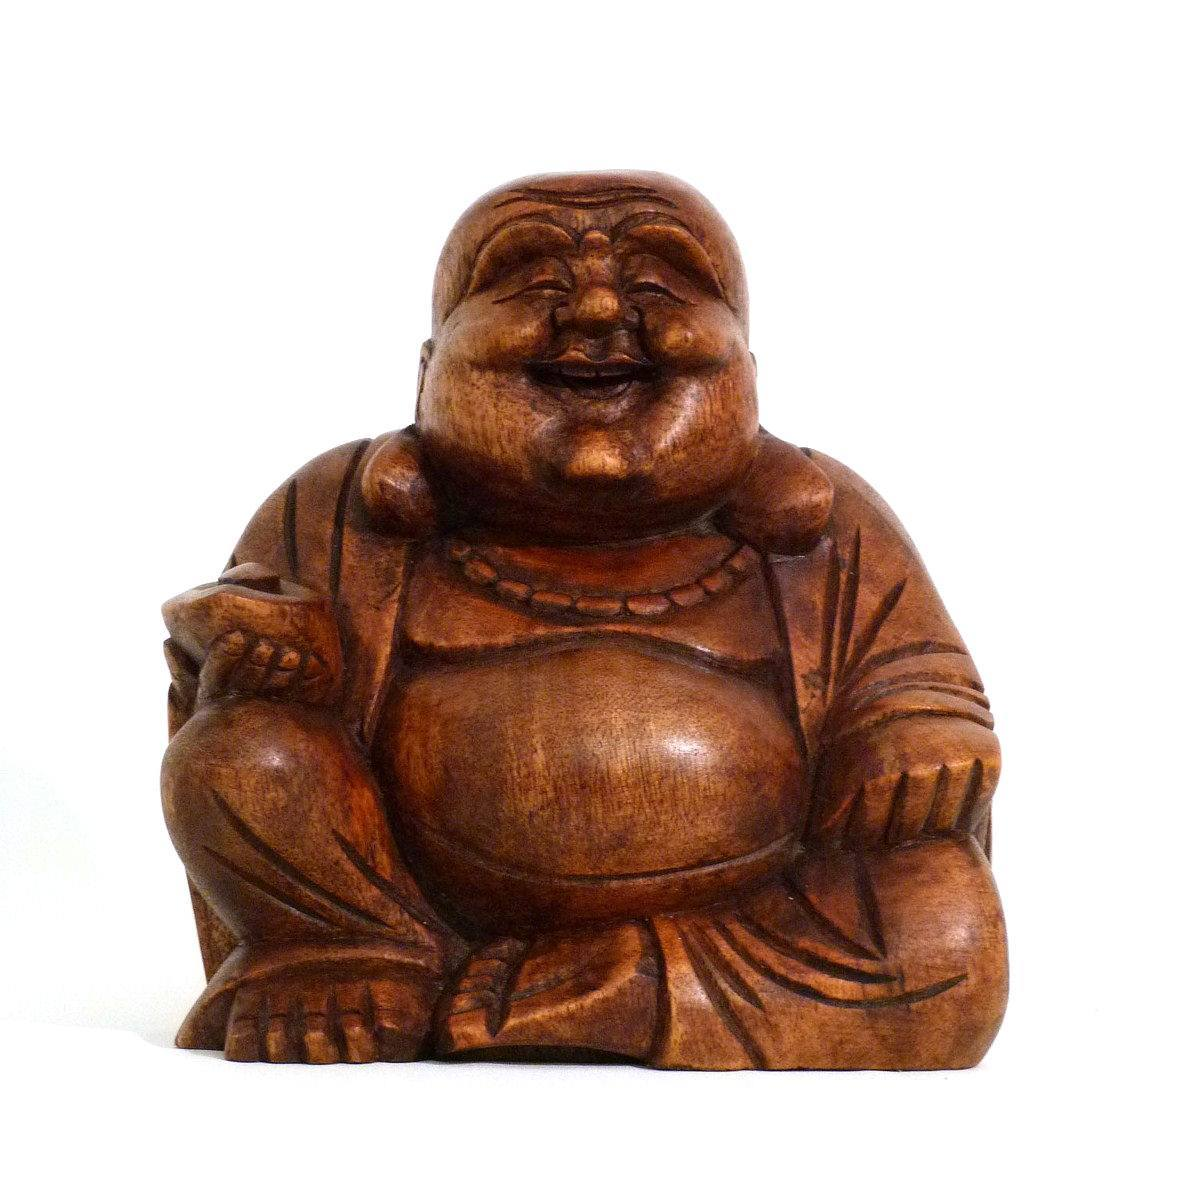 happy buddha holz figur skulptur abstrakt holzfigur asia gl cksbringer 6 cm. Black Bedroom Furniture Sets. Home Design Ideas